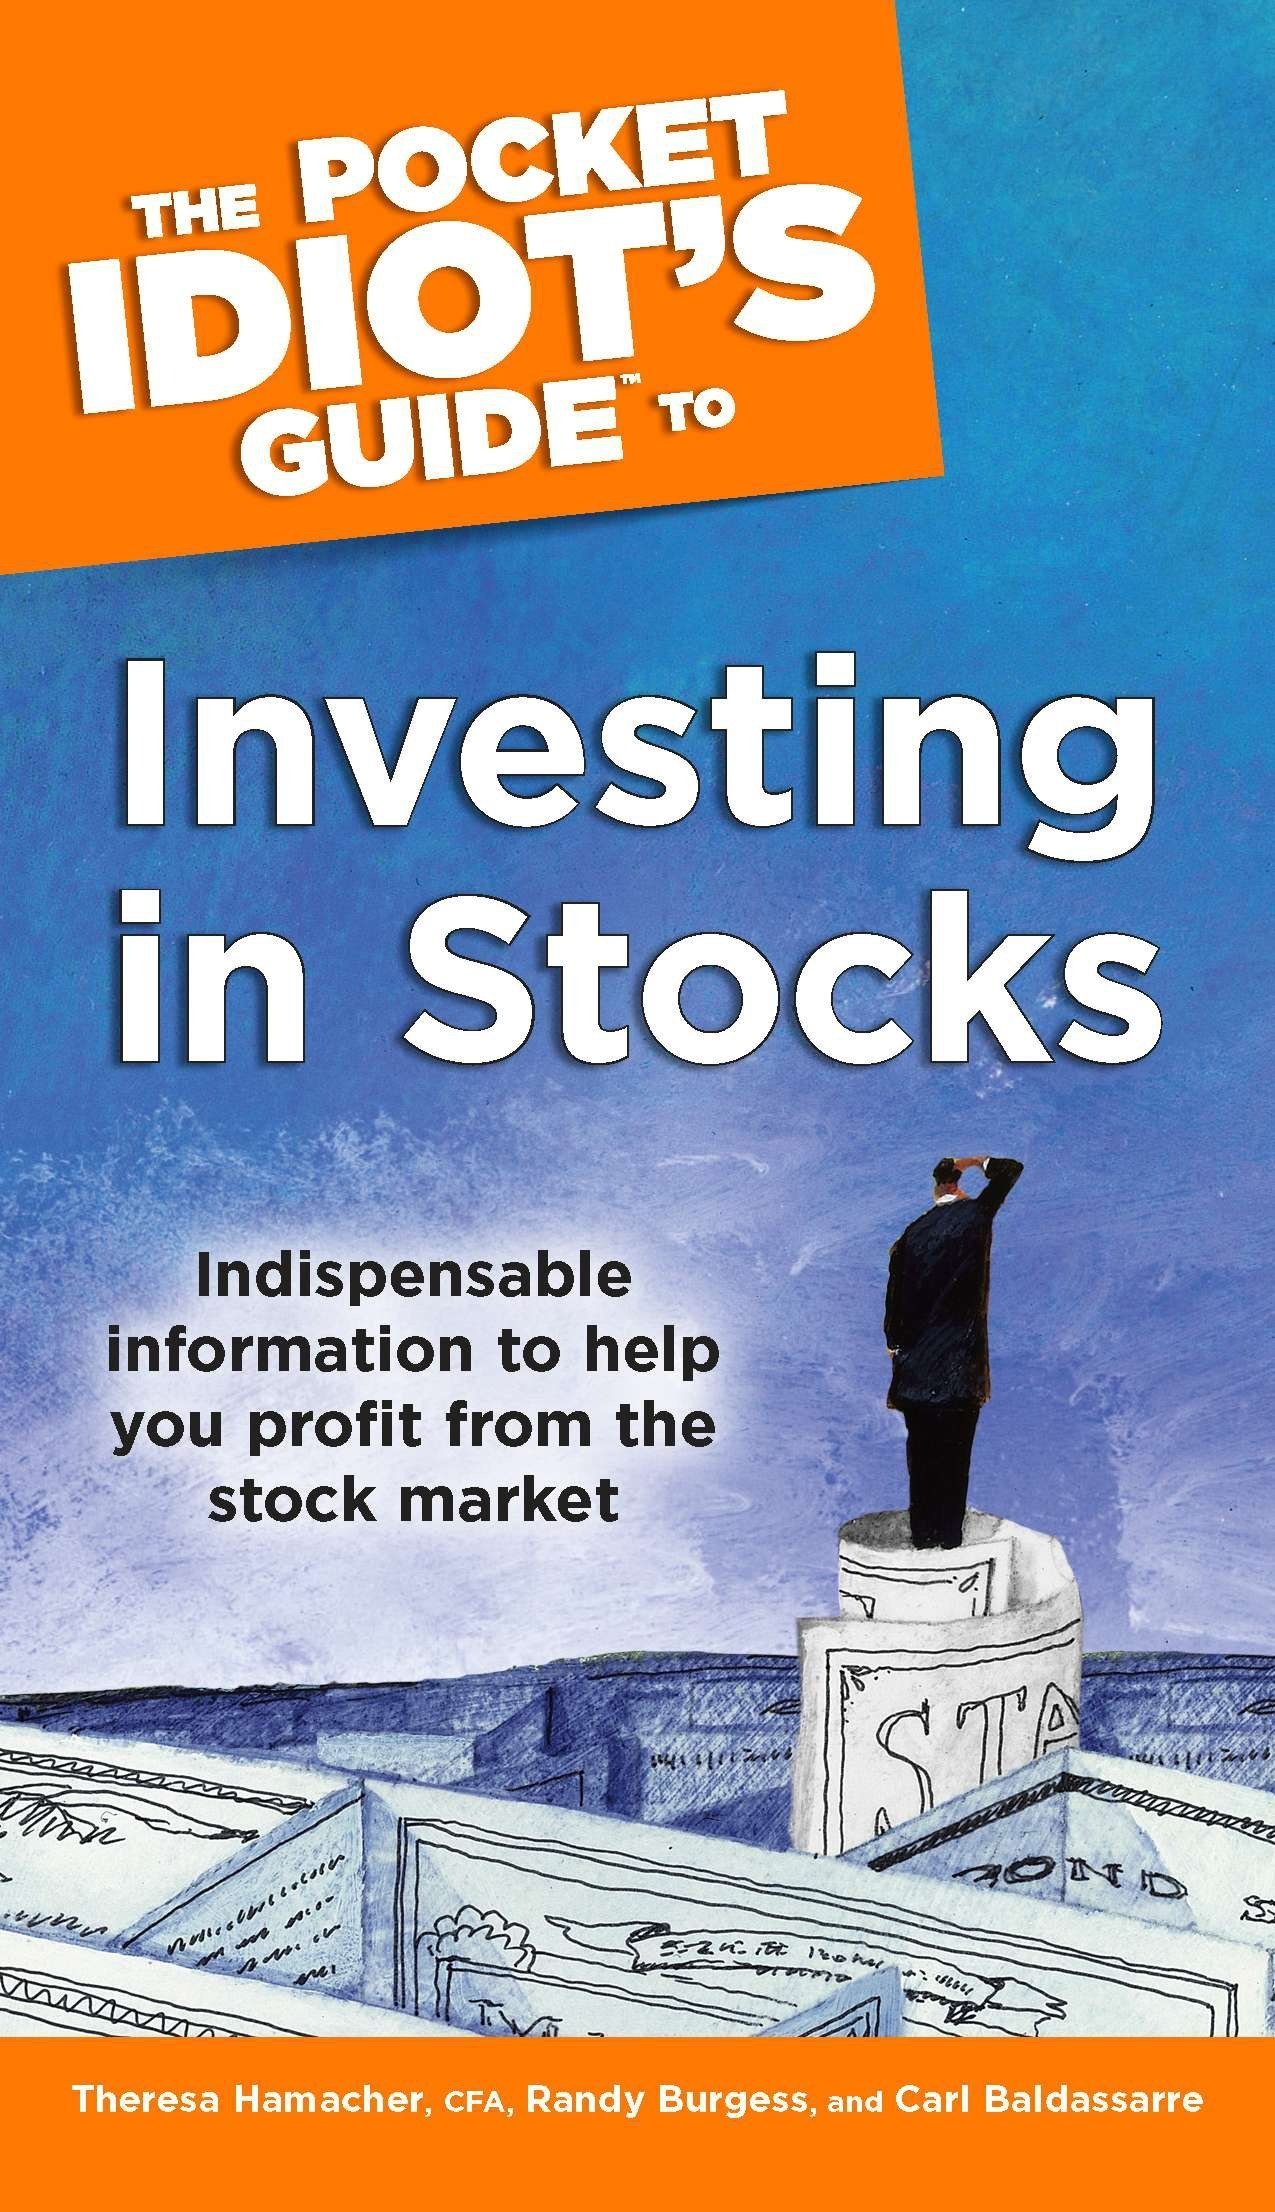 The pocket idiot's guide to investing in stocks (pocket idiot's.